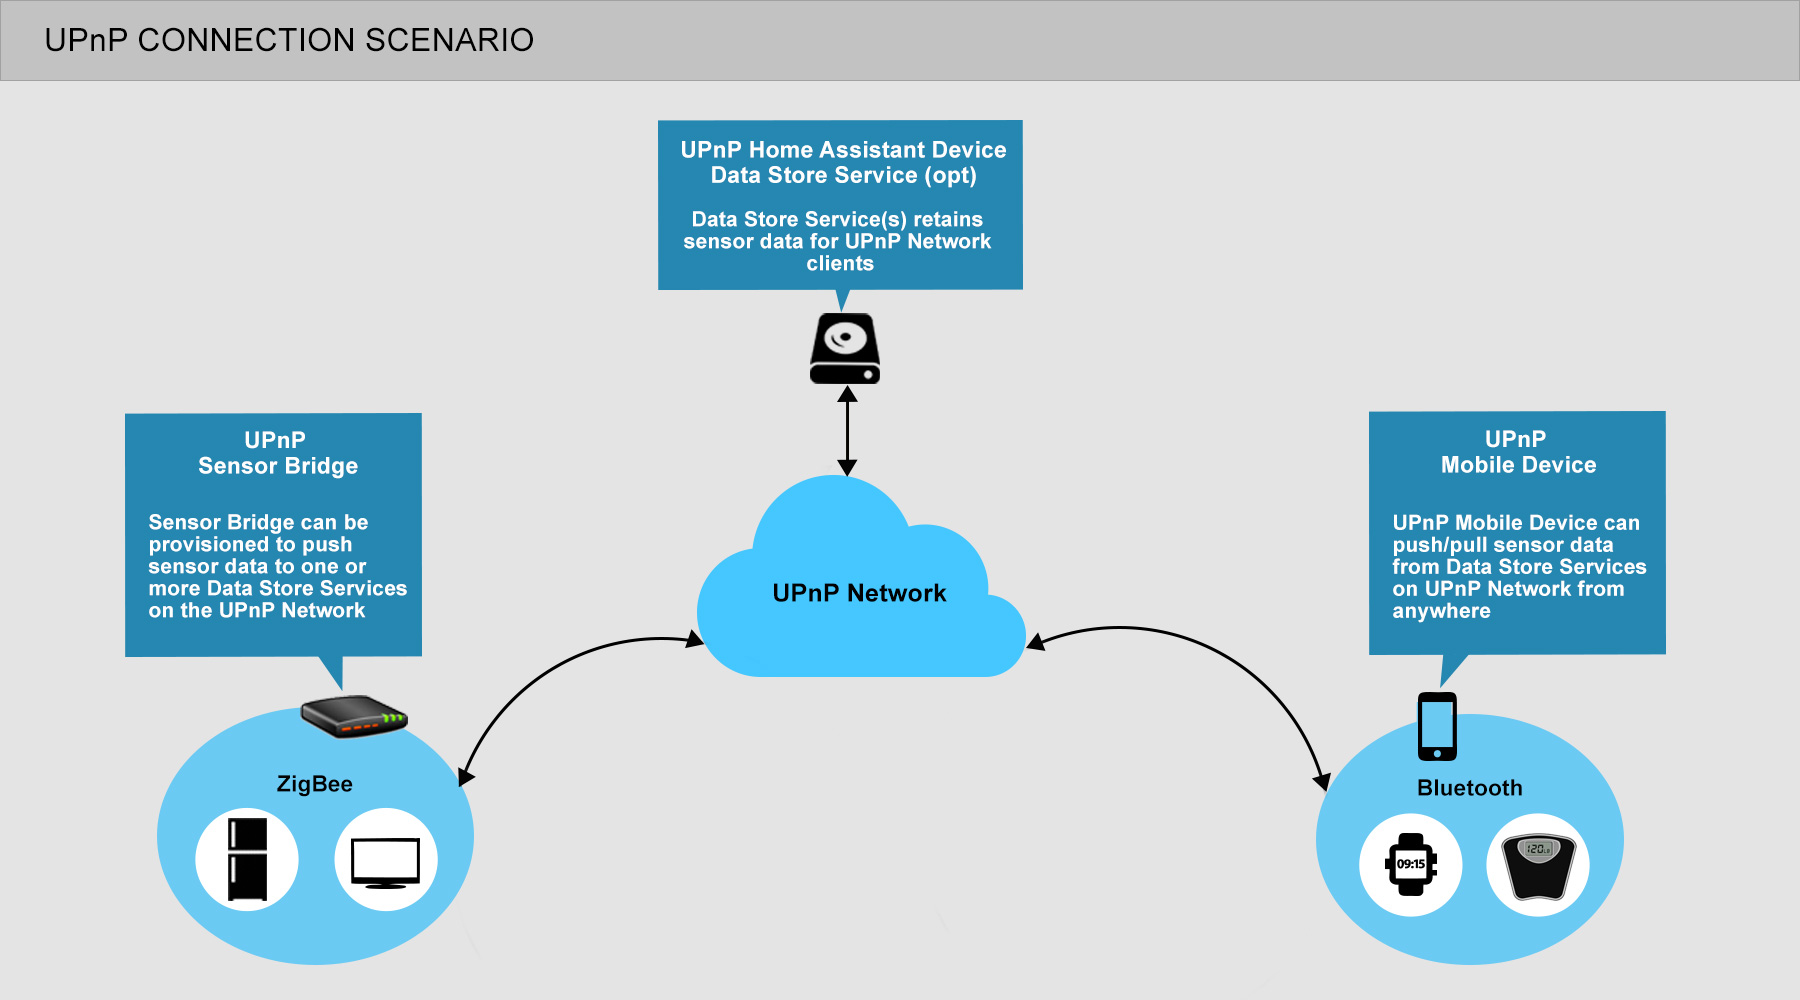 UPnP Connection Scenario